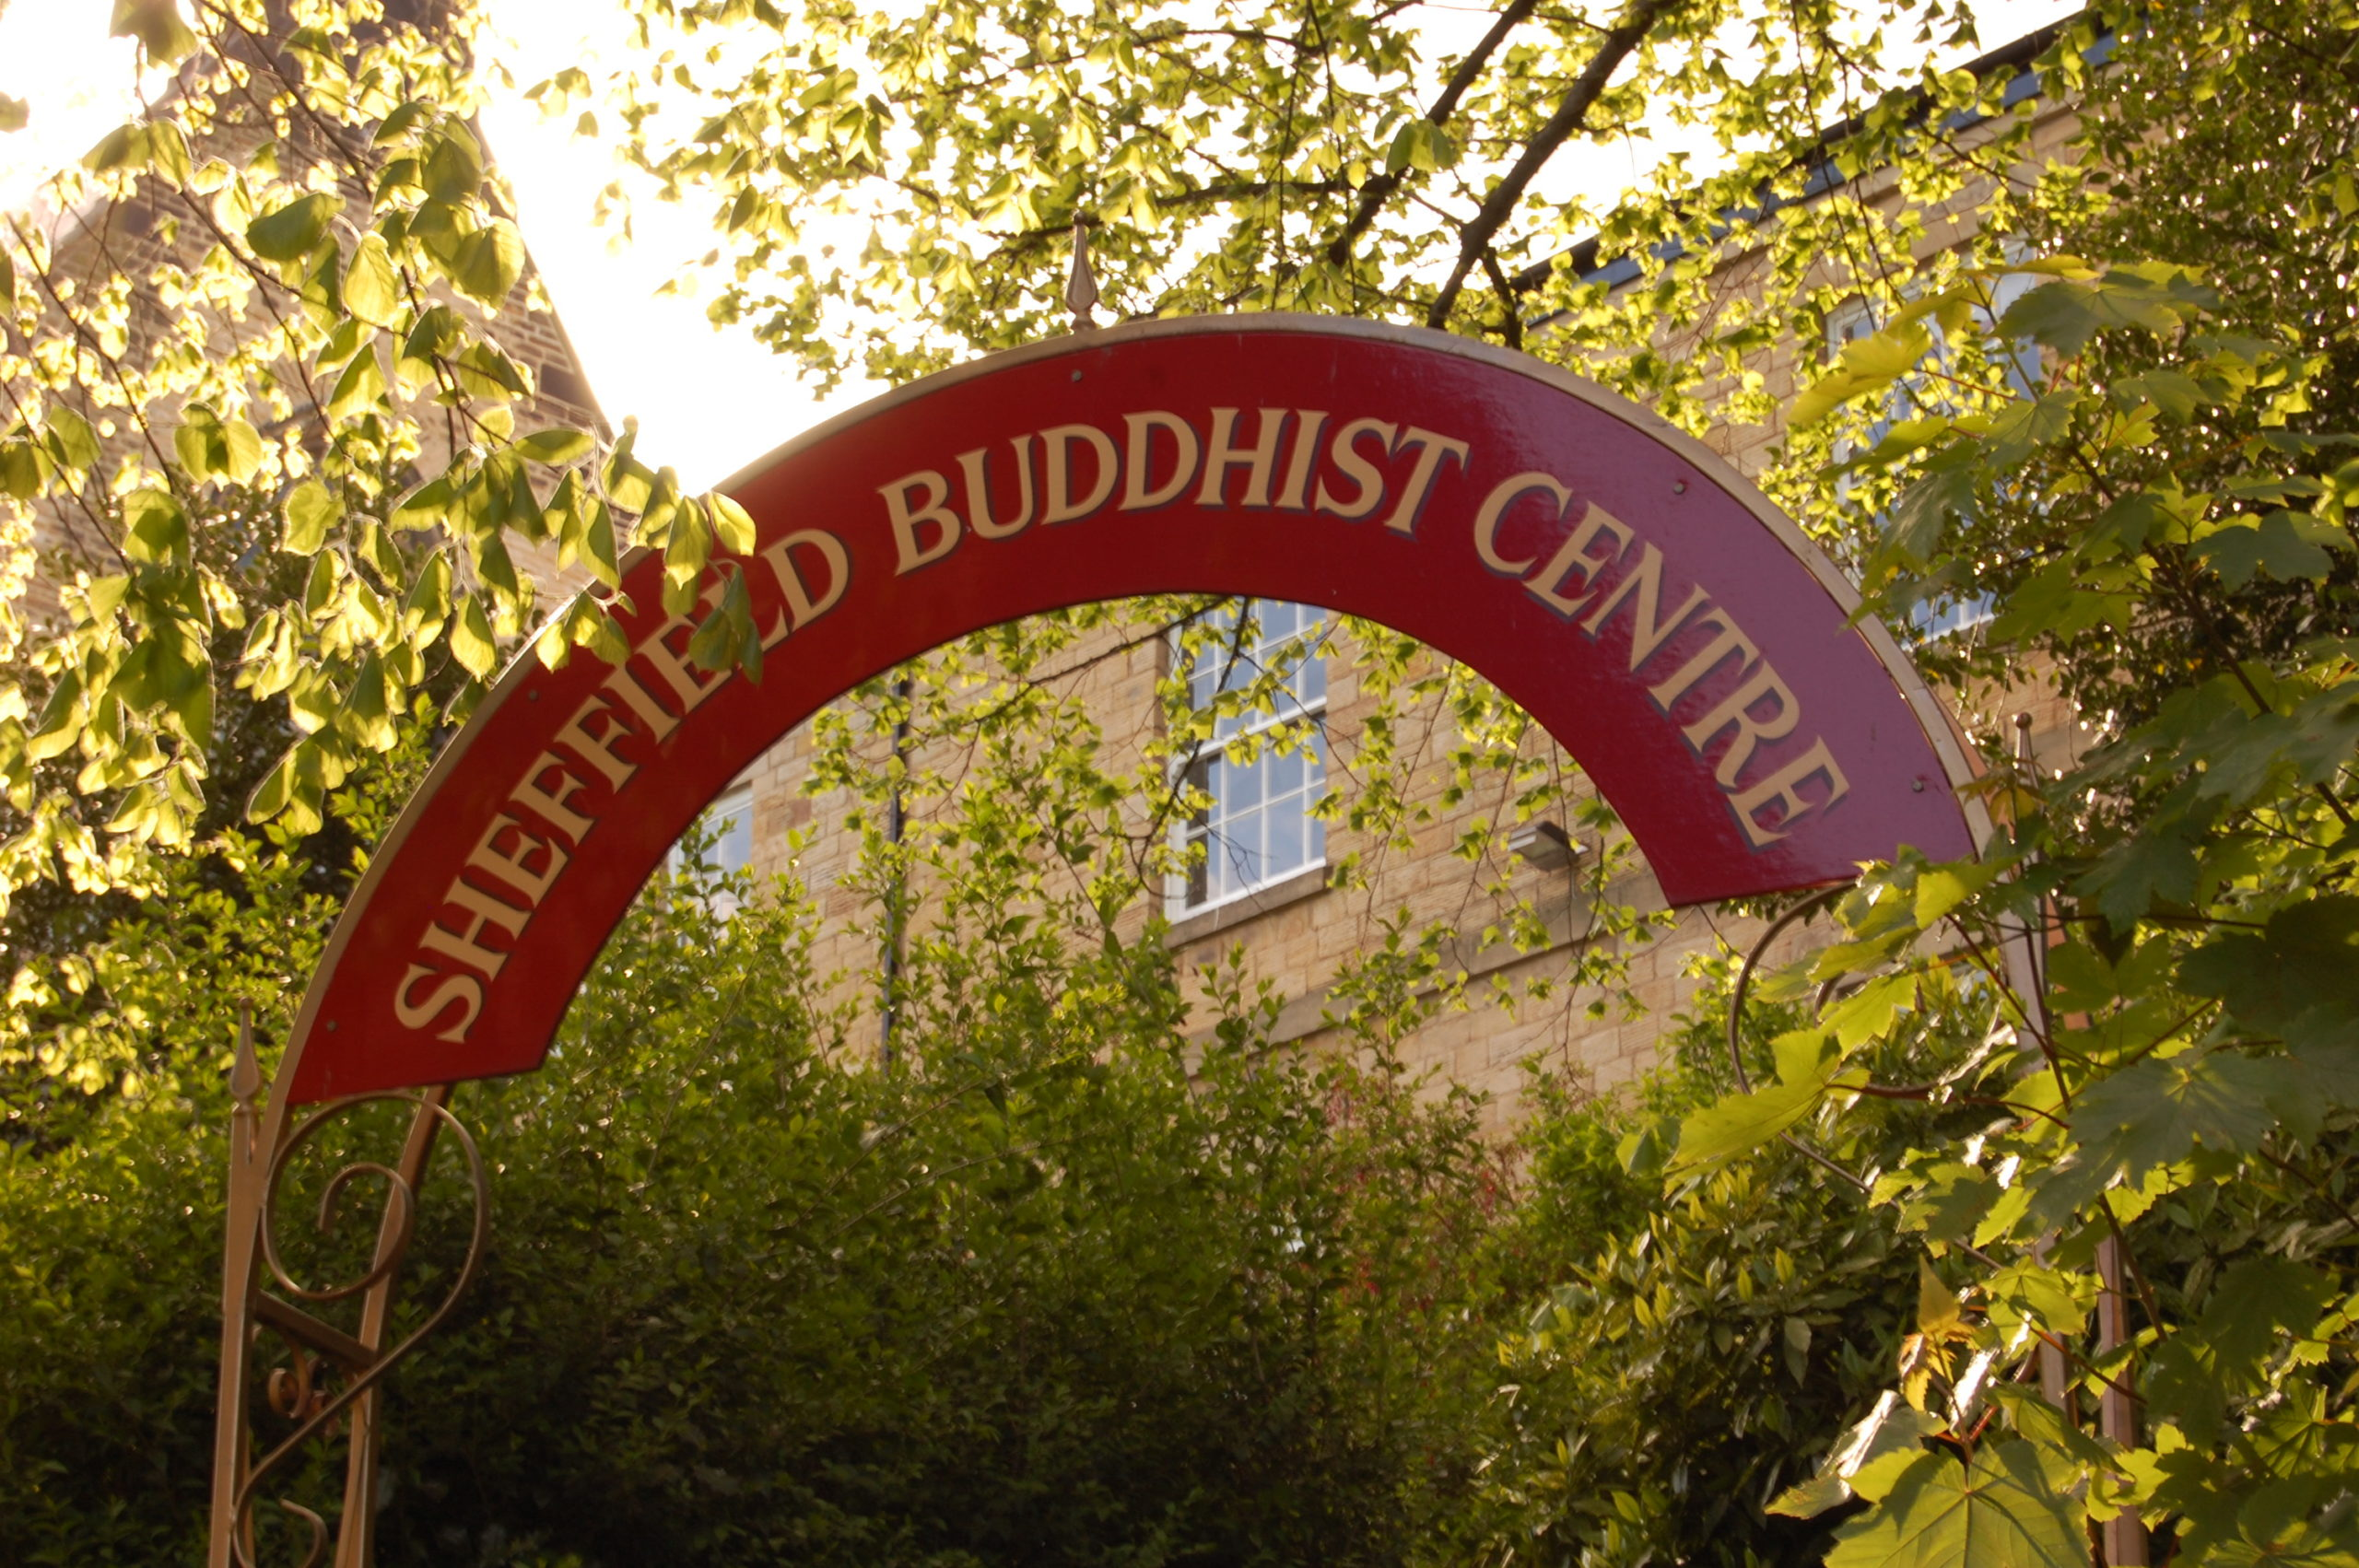 Introducing Buddhism & Meditation